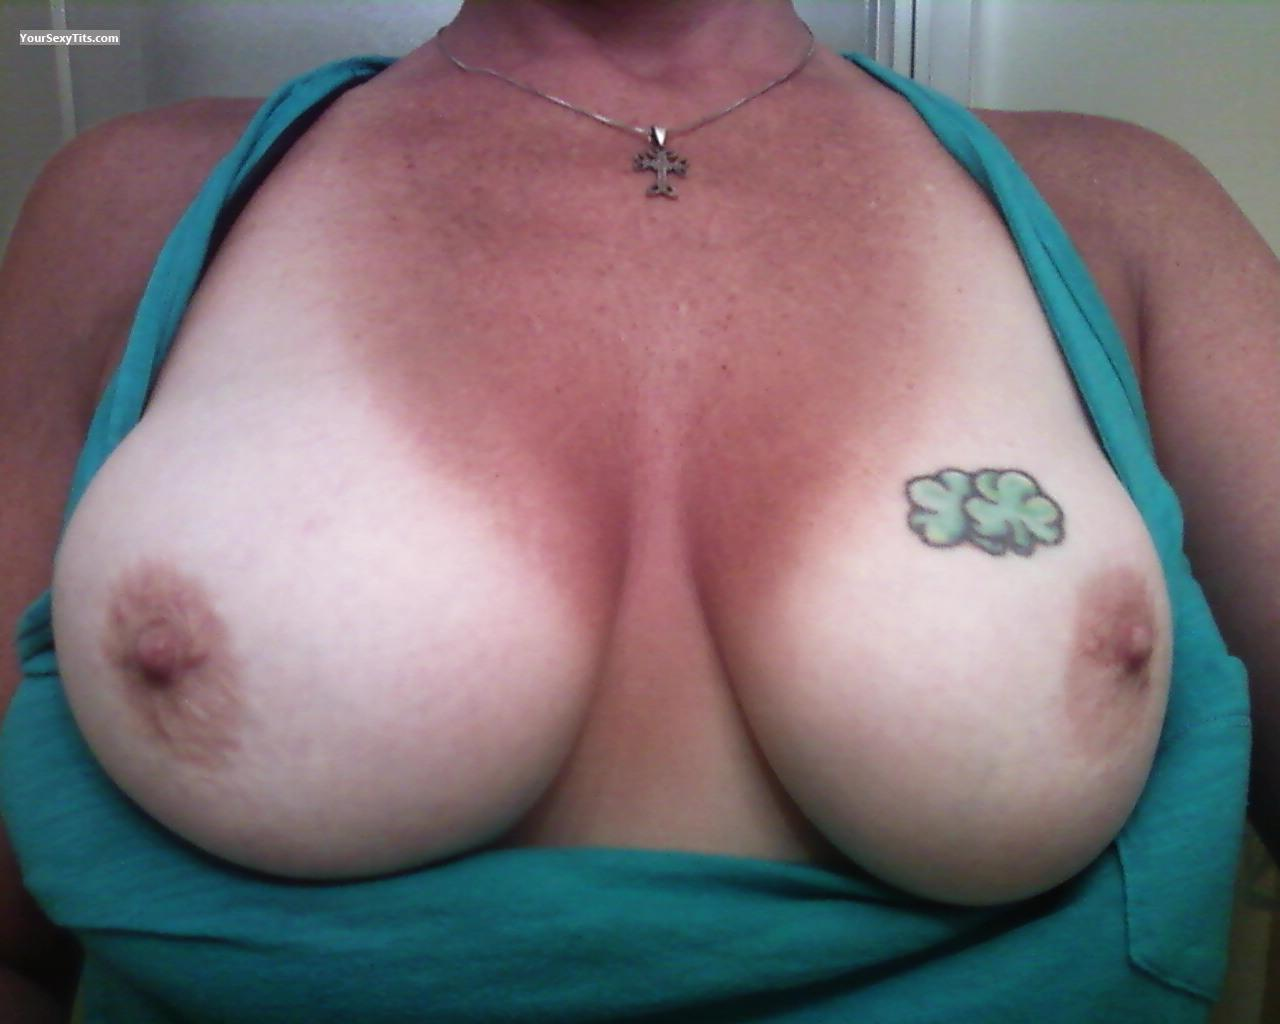 Tit Flash: My Medium Tits (Selfie) - Amber from United States